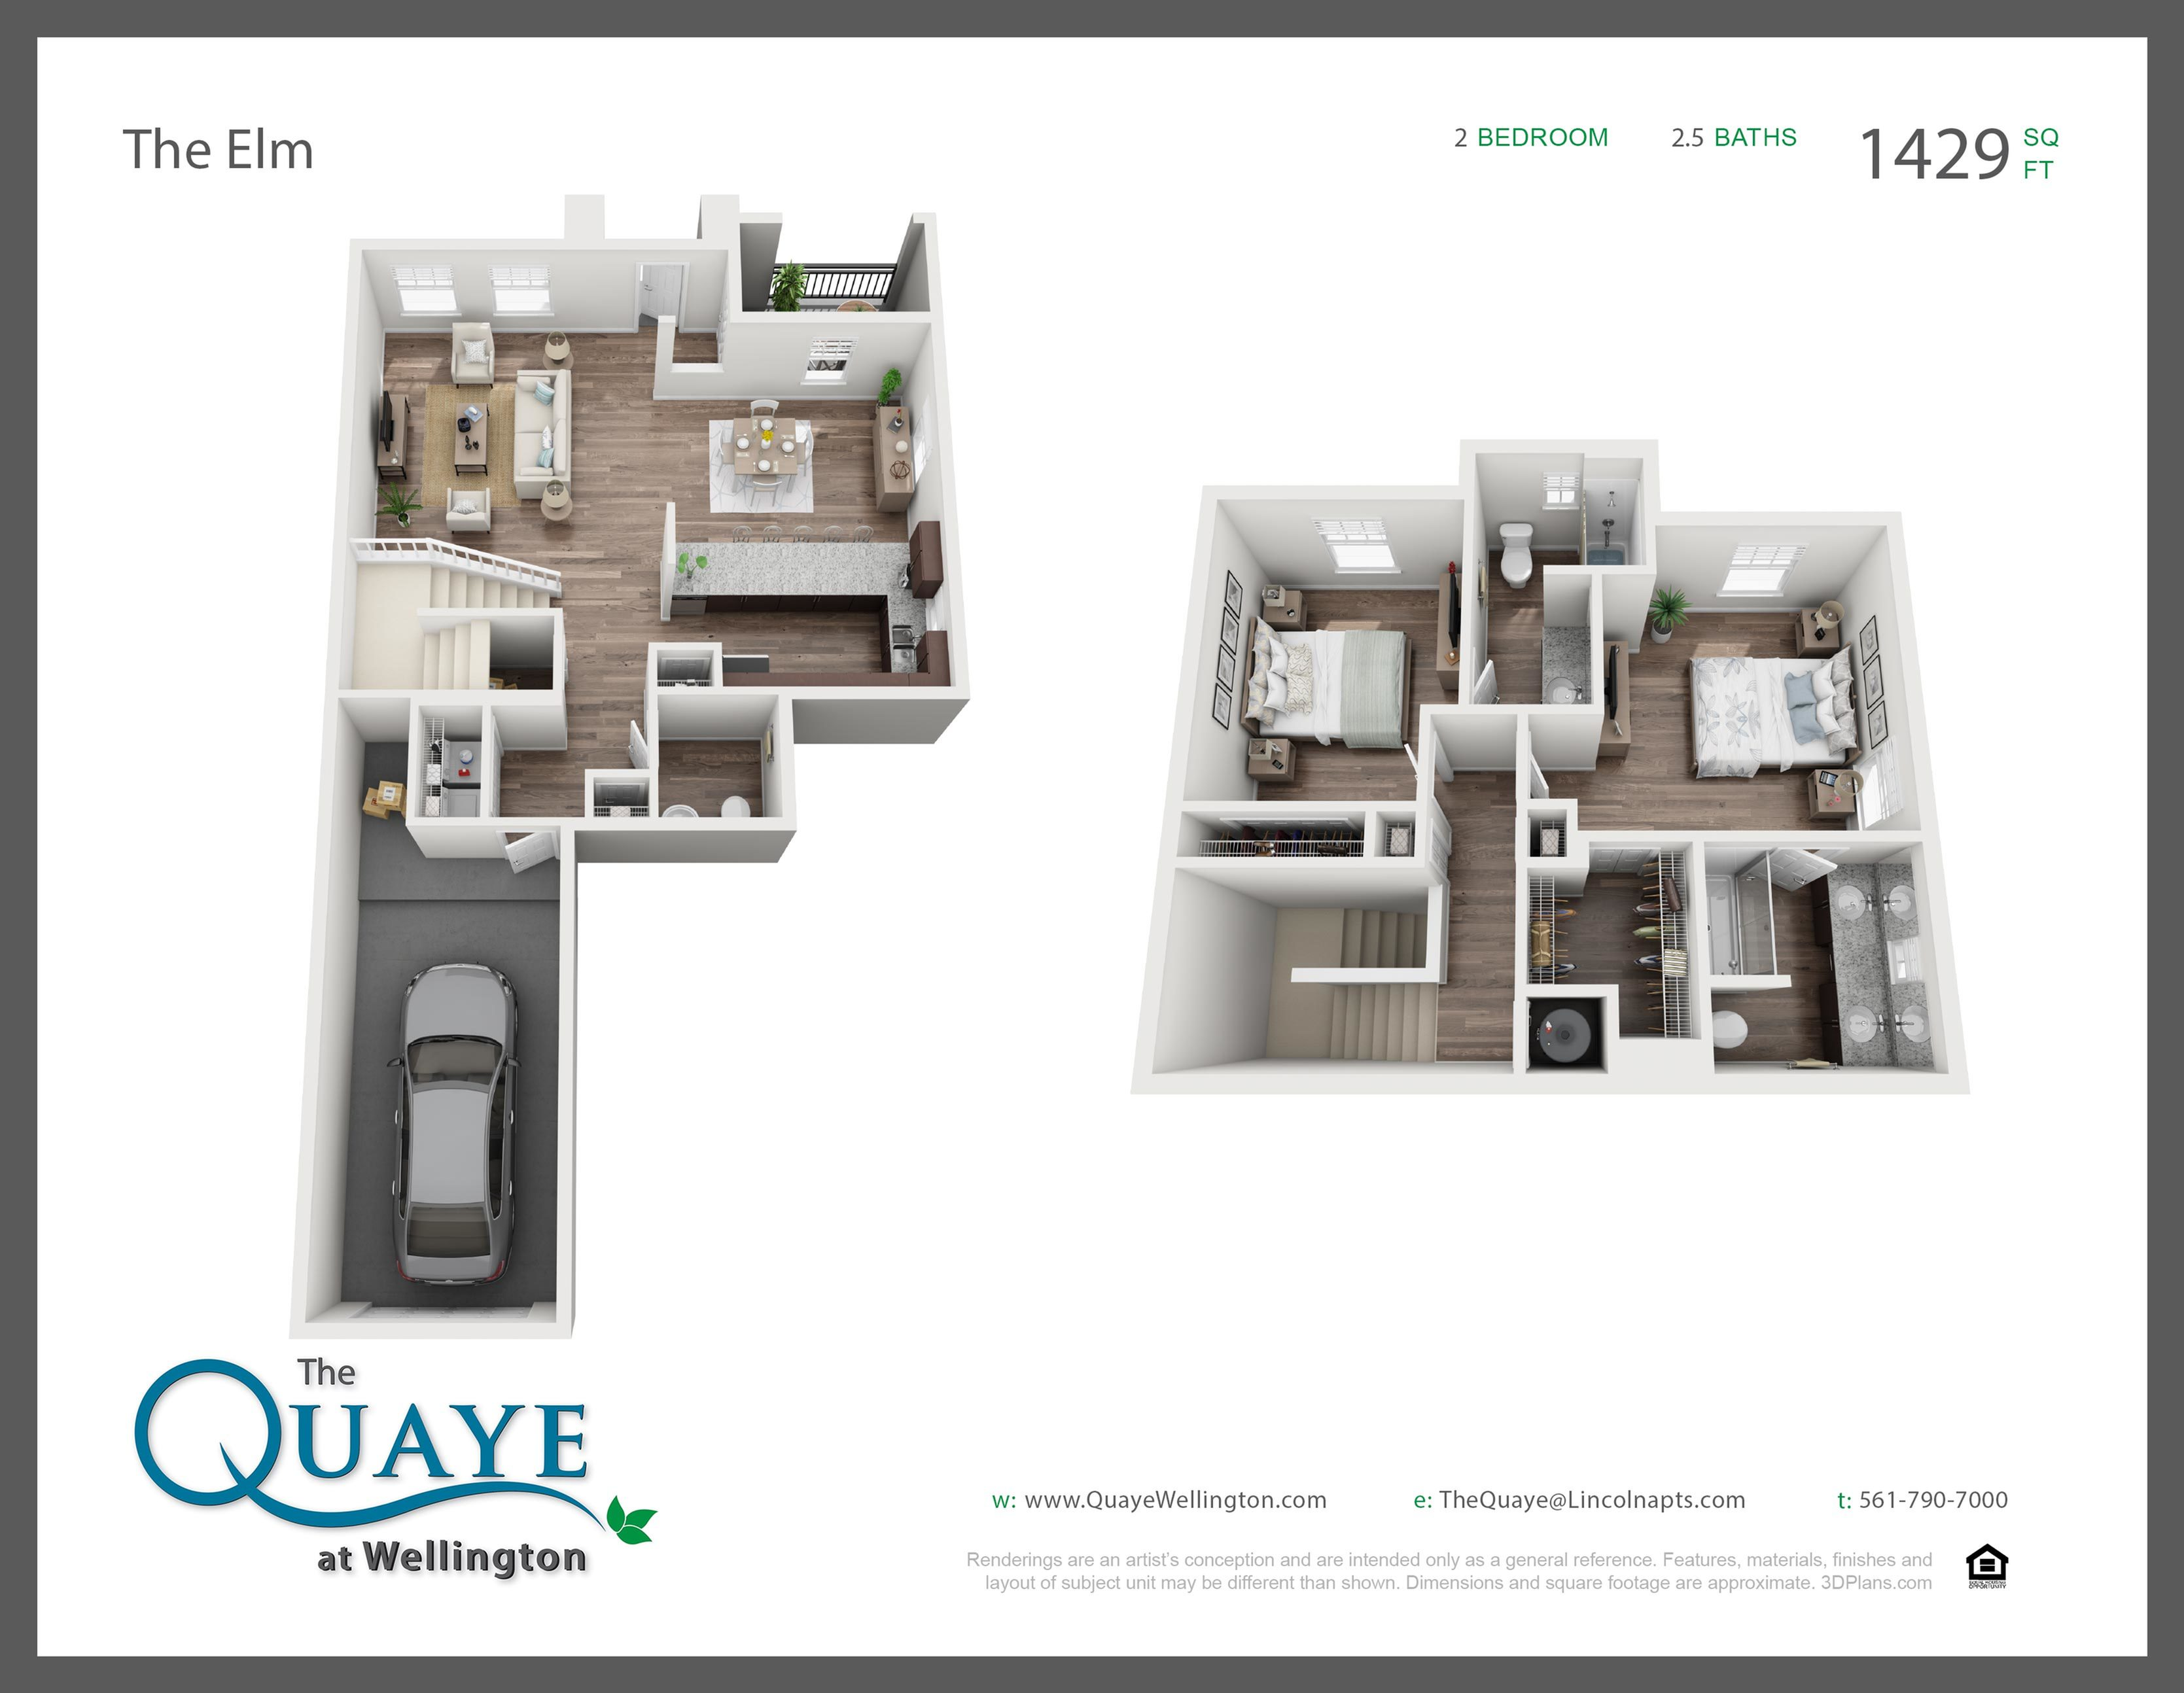 Elm two bedroom two and a half bathroom town home with single car garage 3D floor plan, 1,429 sq. ft.